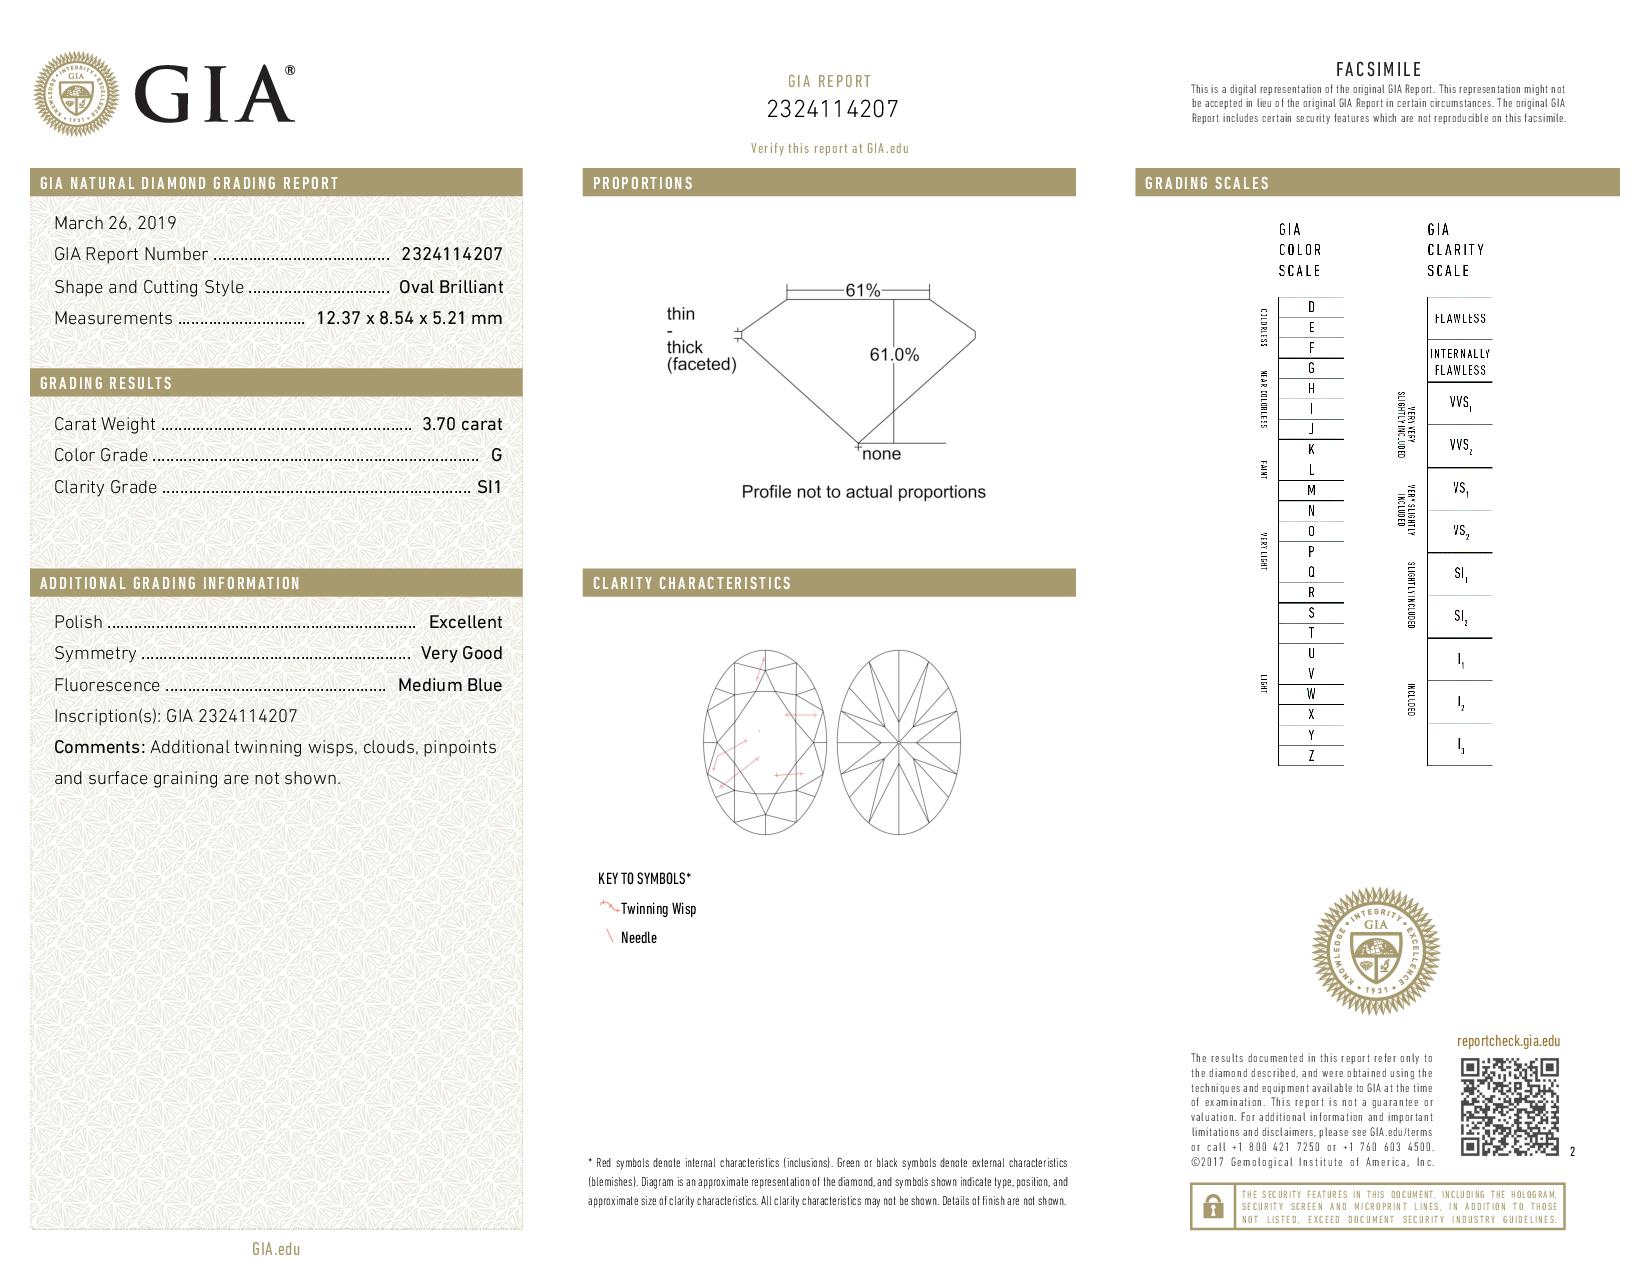 This is a 3.70 carat oval shape, G color, SI1 clarity natural diamond accompanied by a GIA grading report.